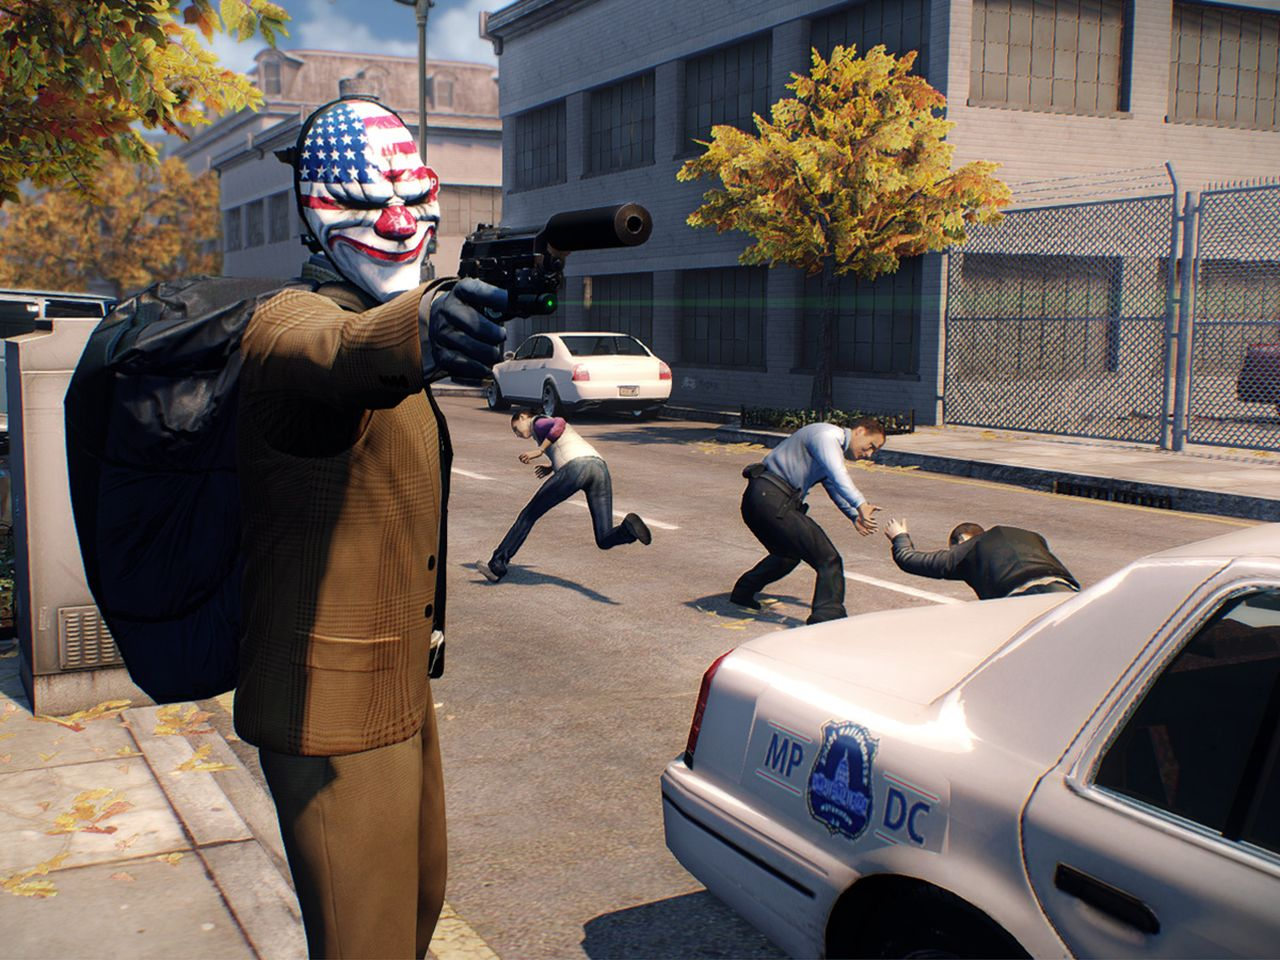 17. Payday 2